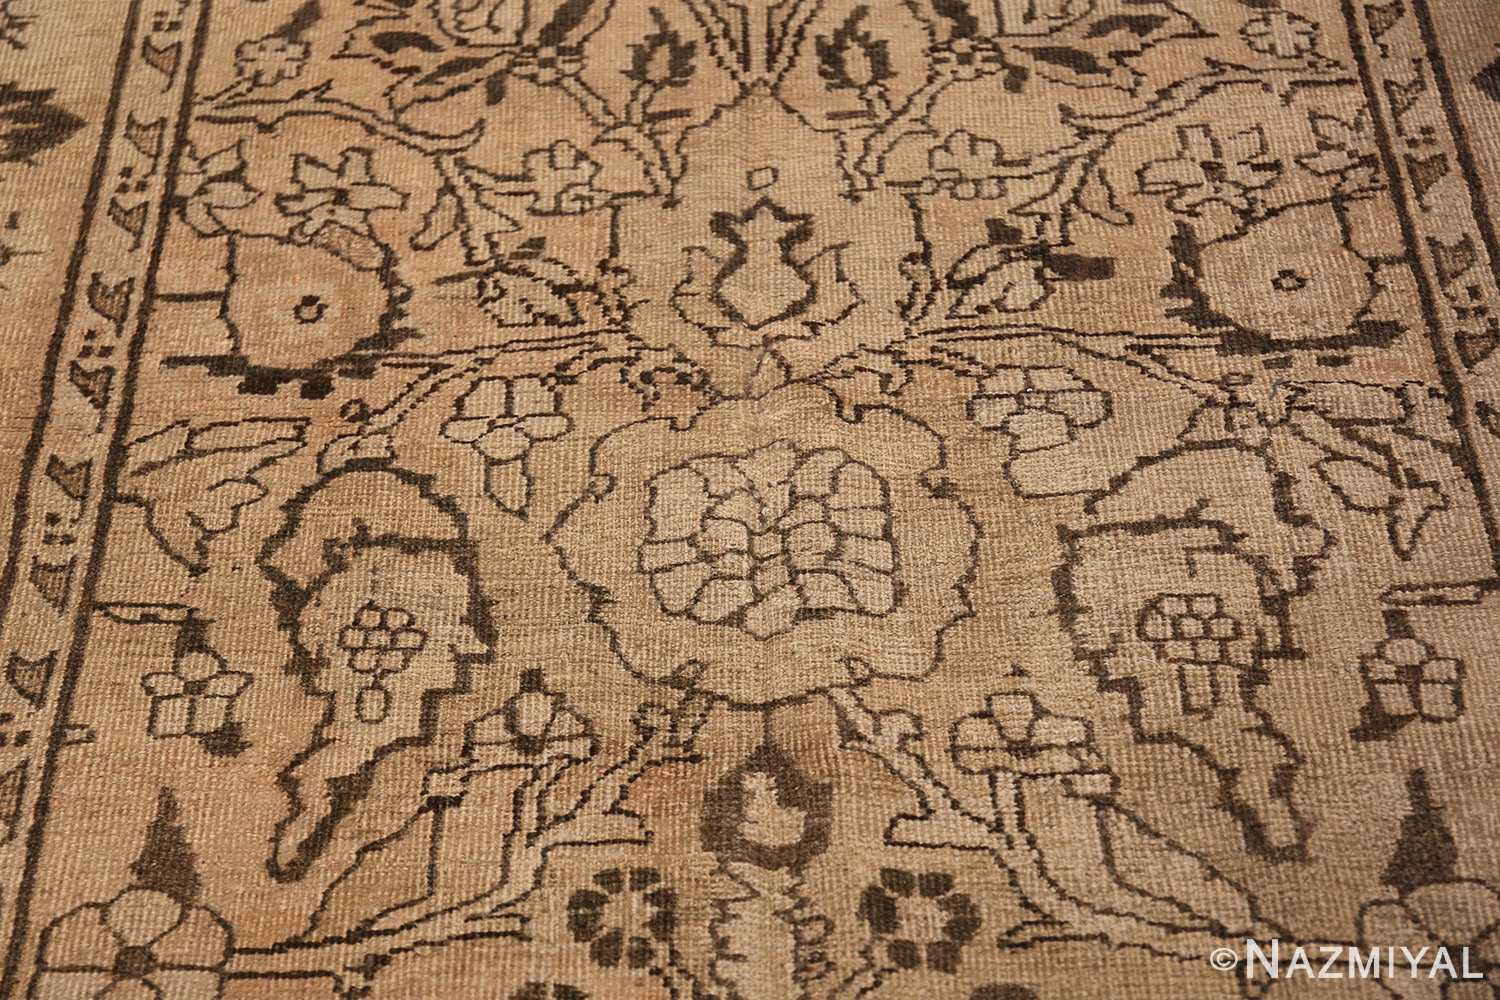 Antique Small Size Earth Tone Indian Amritsar Rug 41656 Big Central Rose Nazmiyal